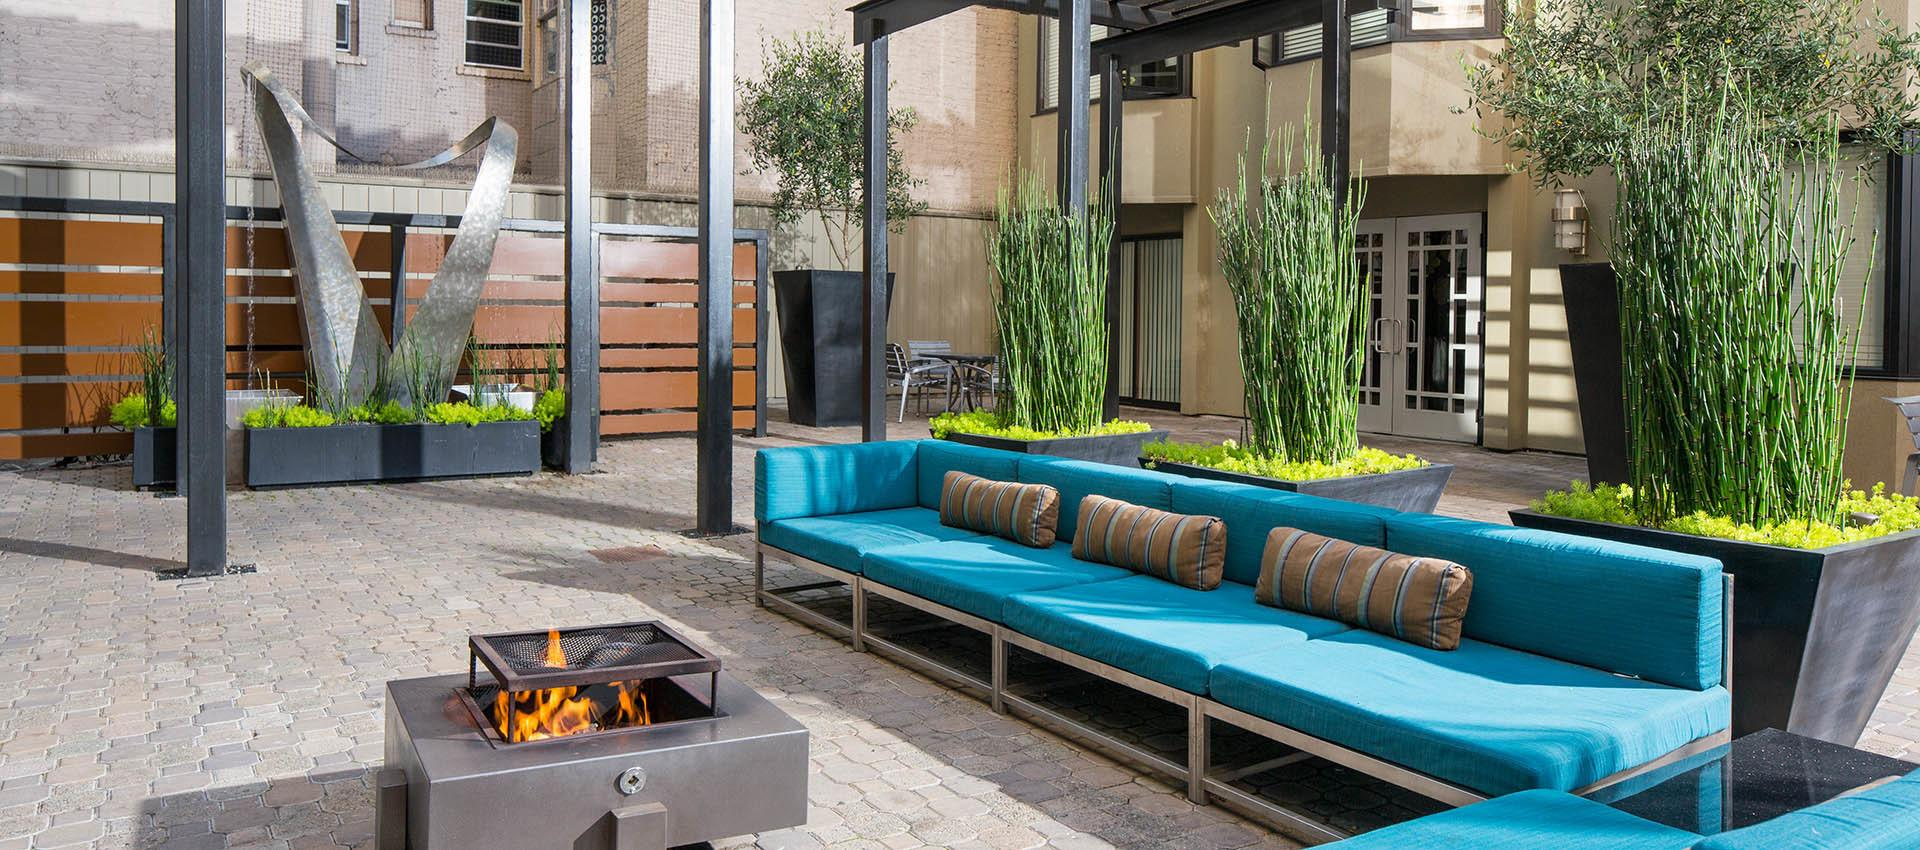 Courtyard with Fireside Seating at Tower 737 Condominium Rentals in San Francisco